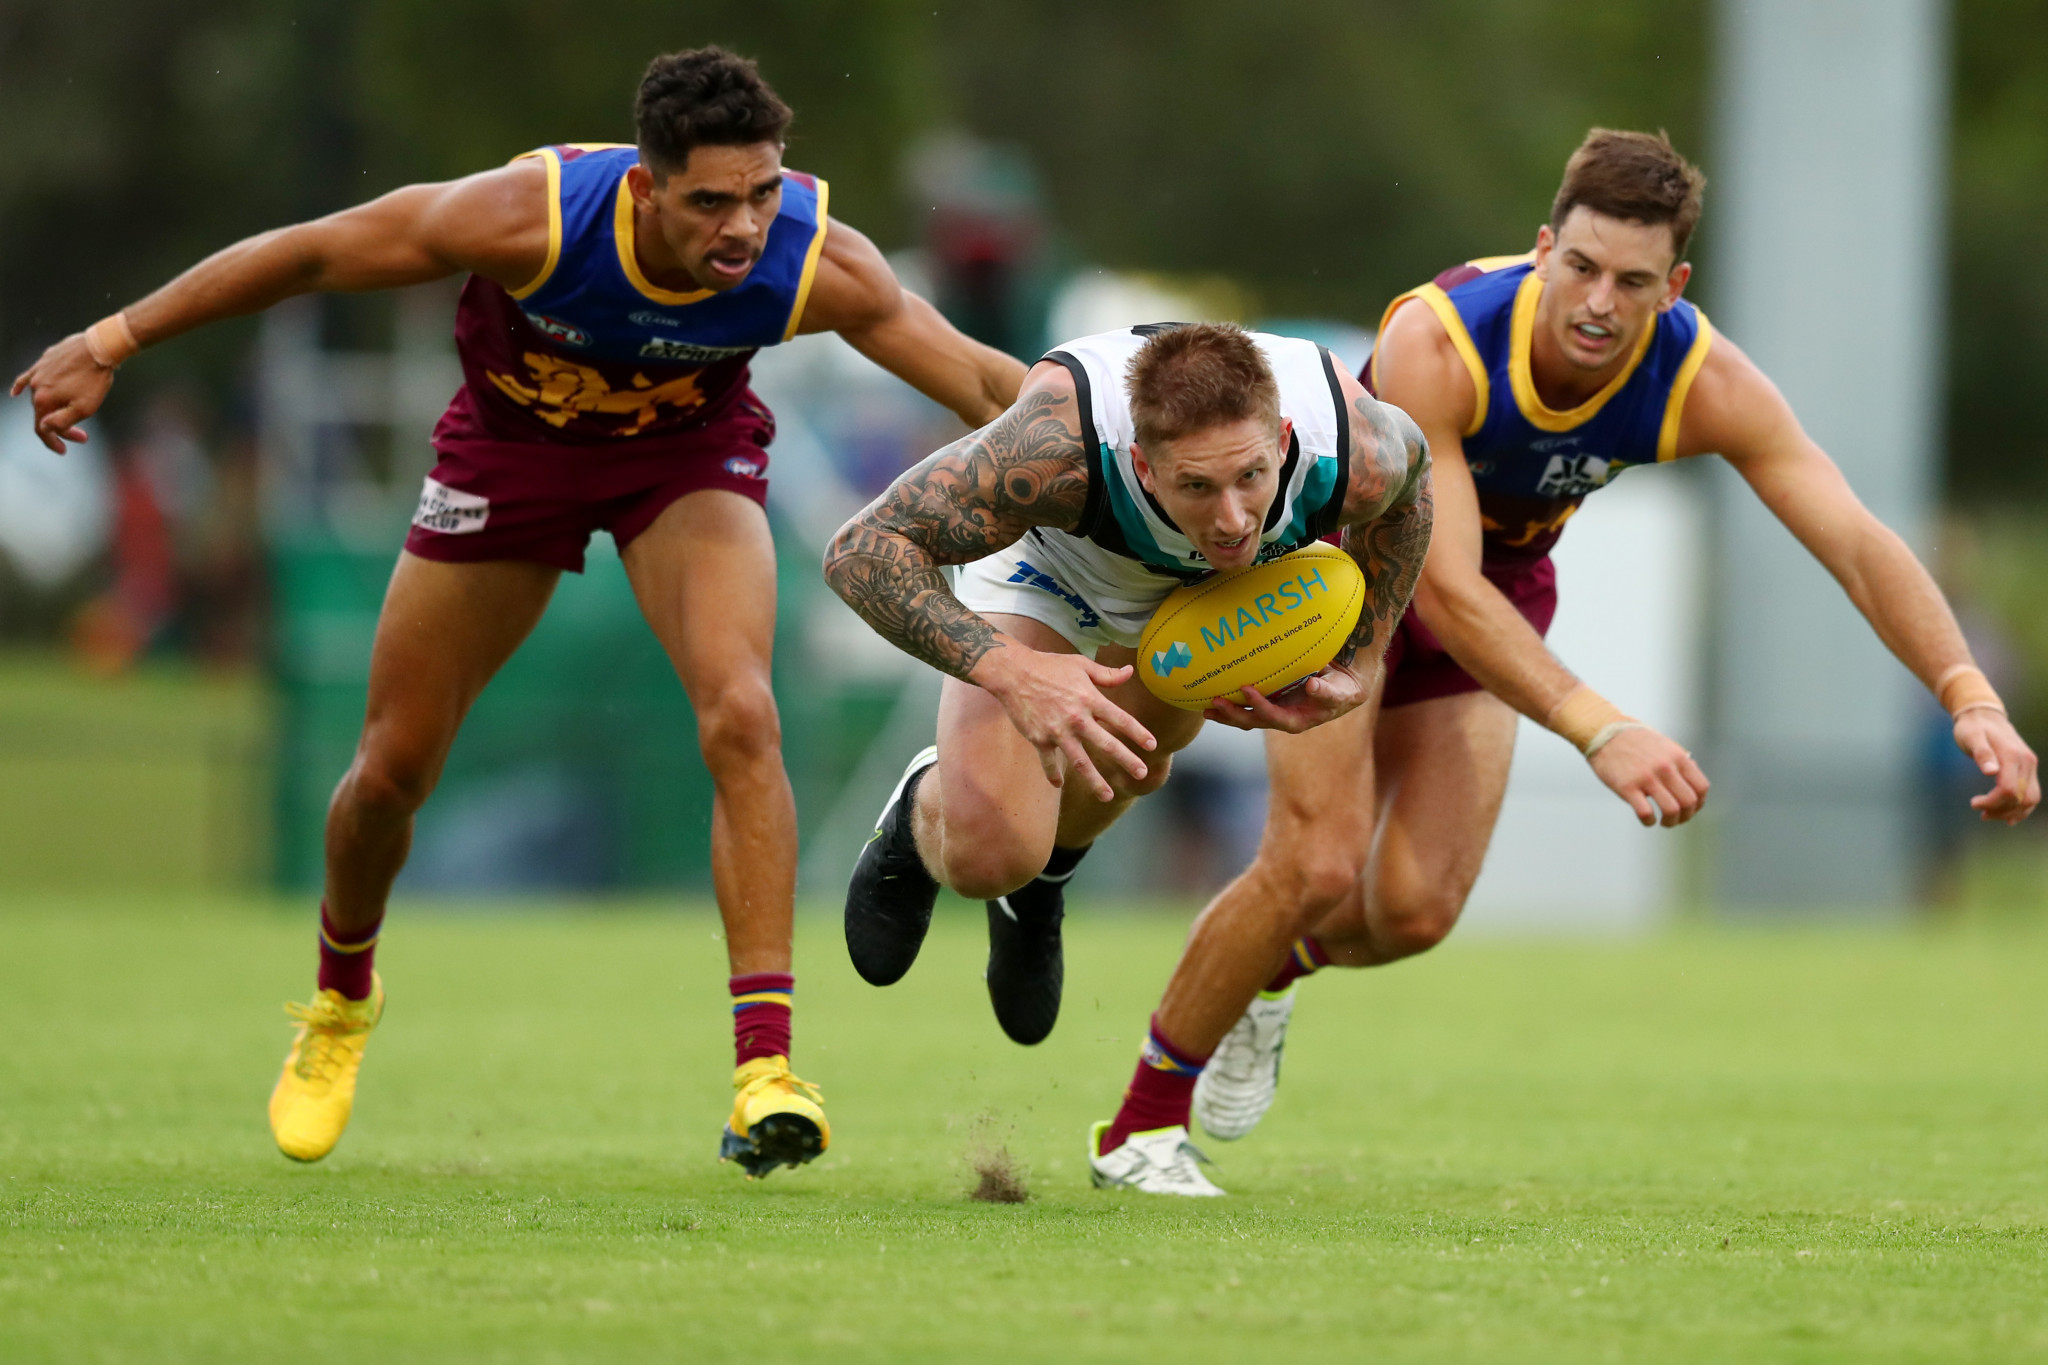 Australian Football League teams to return to training next week